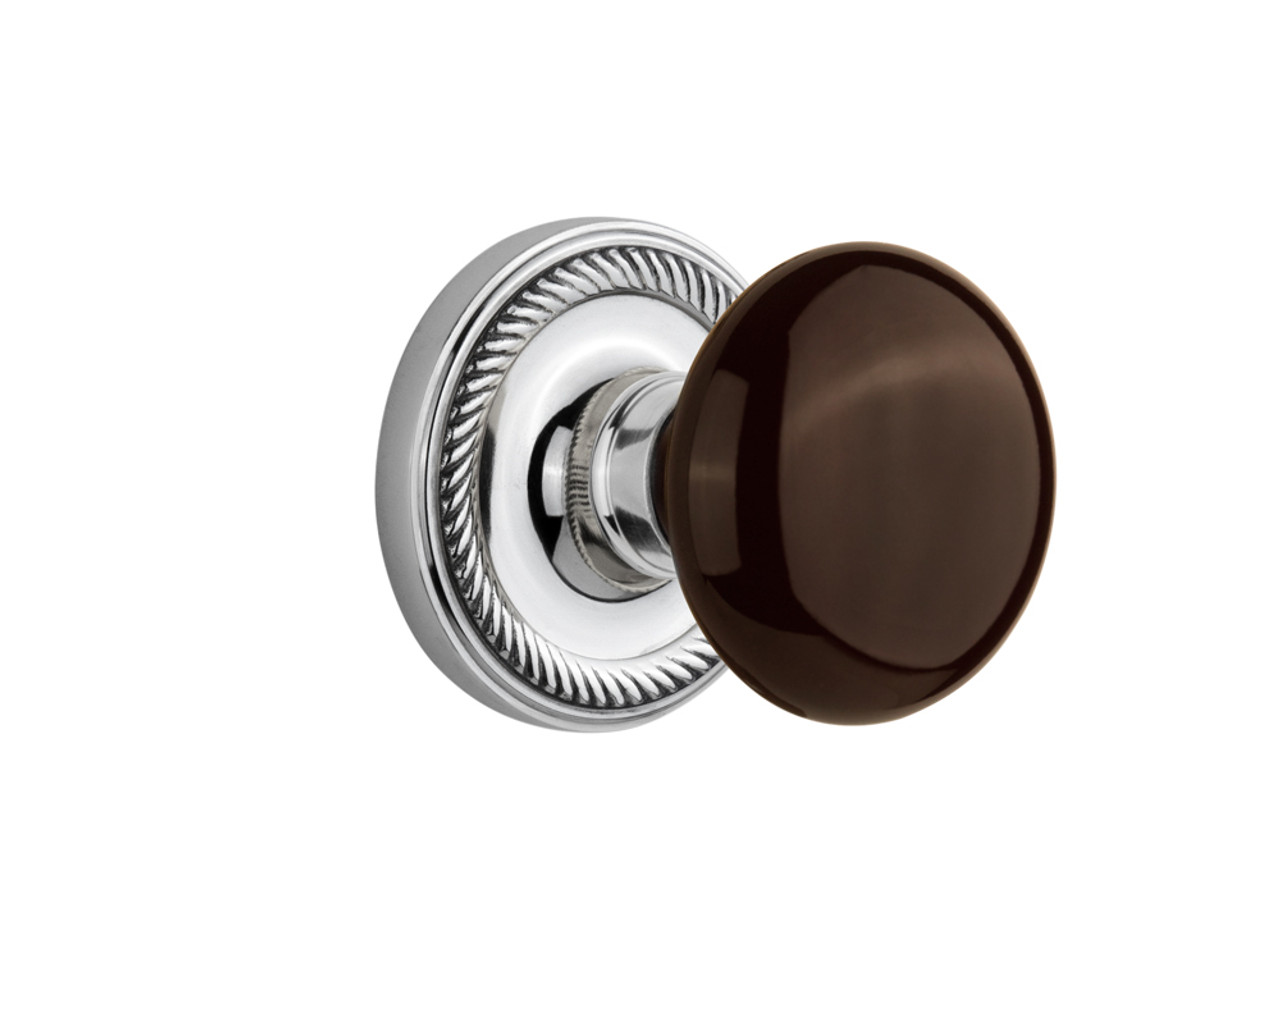 Nostalgic Warehouse Rope Rosette Double Dummy Brown Porcelain Door Knob in Bright Chrome (NW-710662)